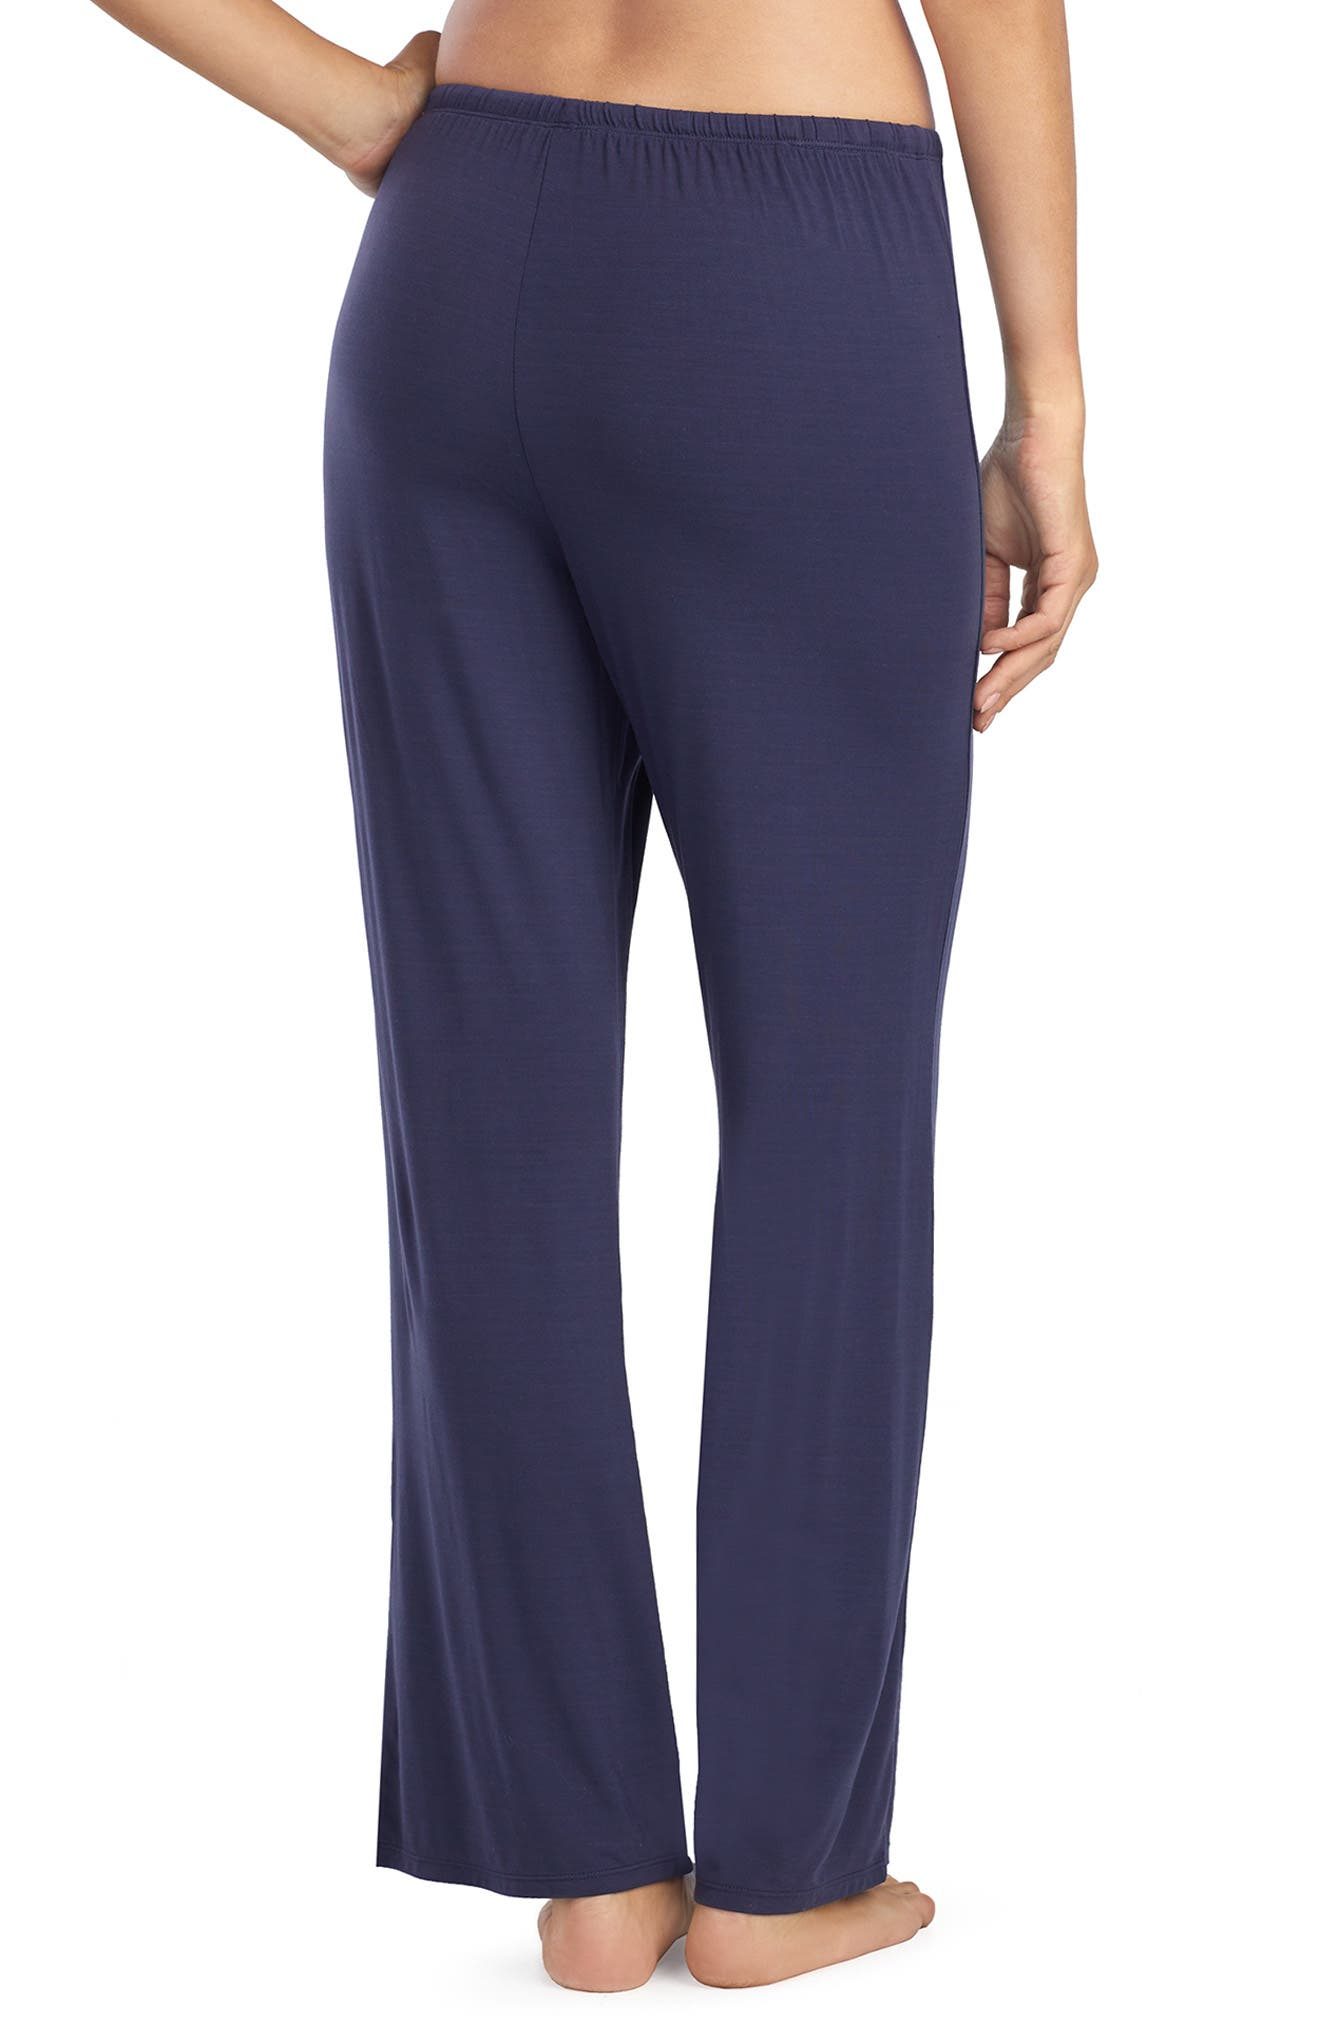 LAUREN RALPH LAUREN,                             Pajama Pants,                             Alternate thumbnail 2, color,                             NAVY